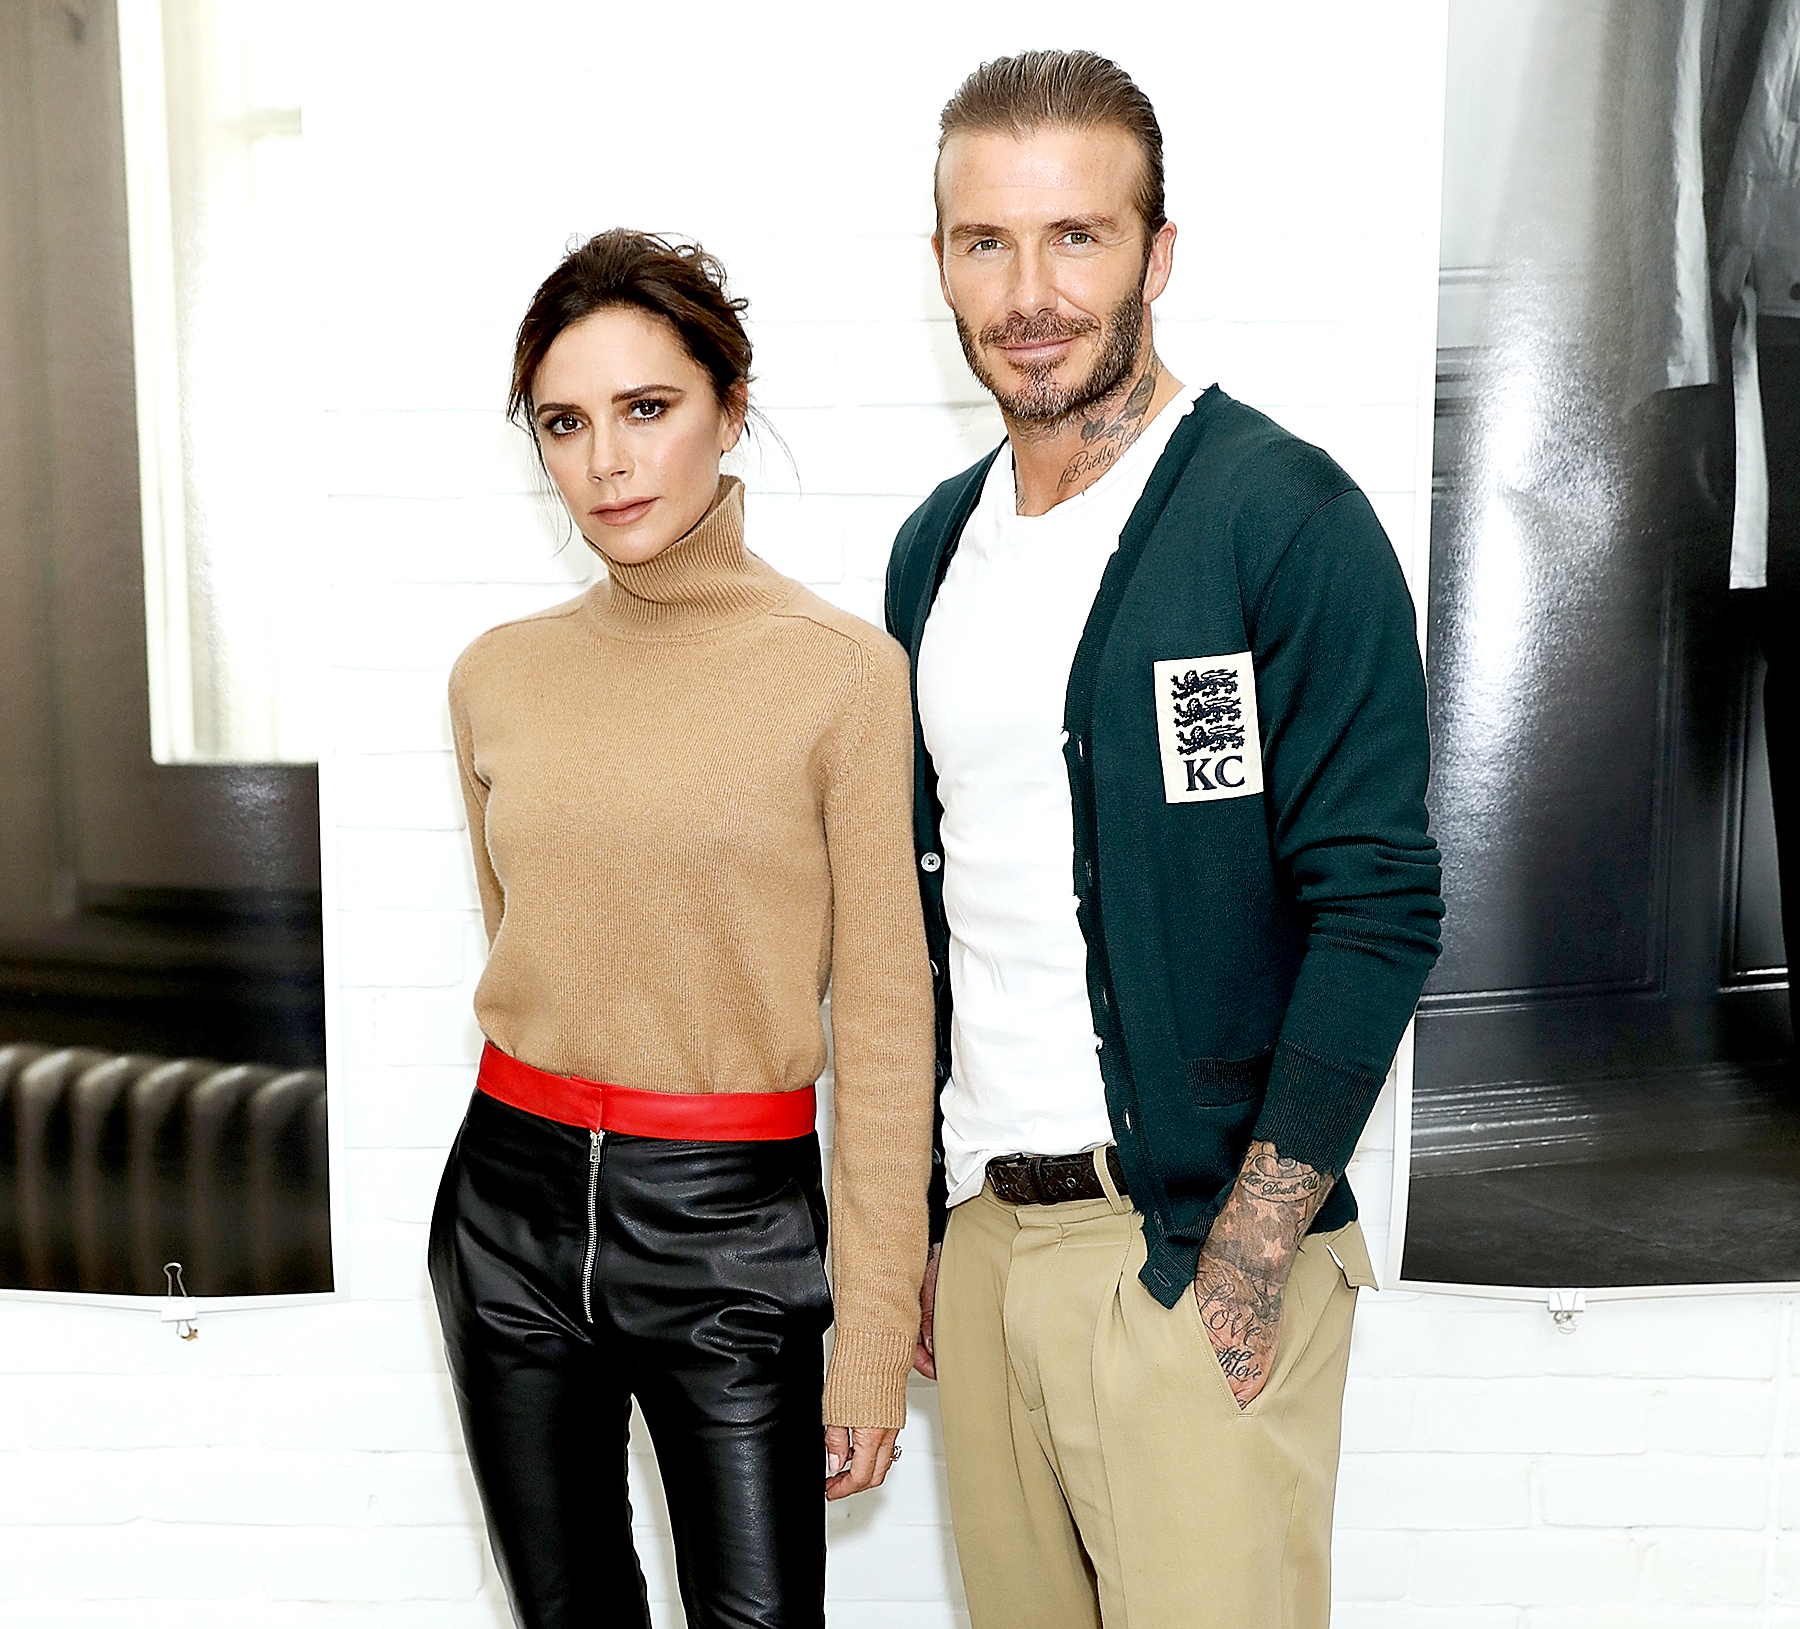 Victoria Beckham Just Invented a Strange New Way to Carry a Handbag Victoria Beckham Just Invented a Strange New Way to Carry a Handbag new foto